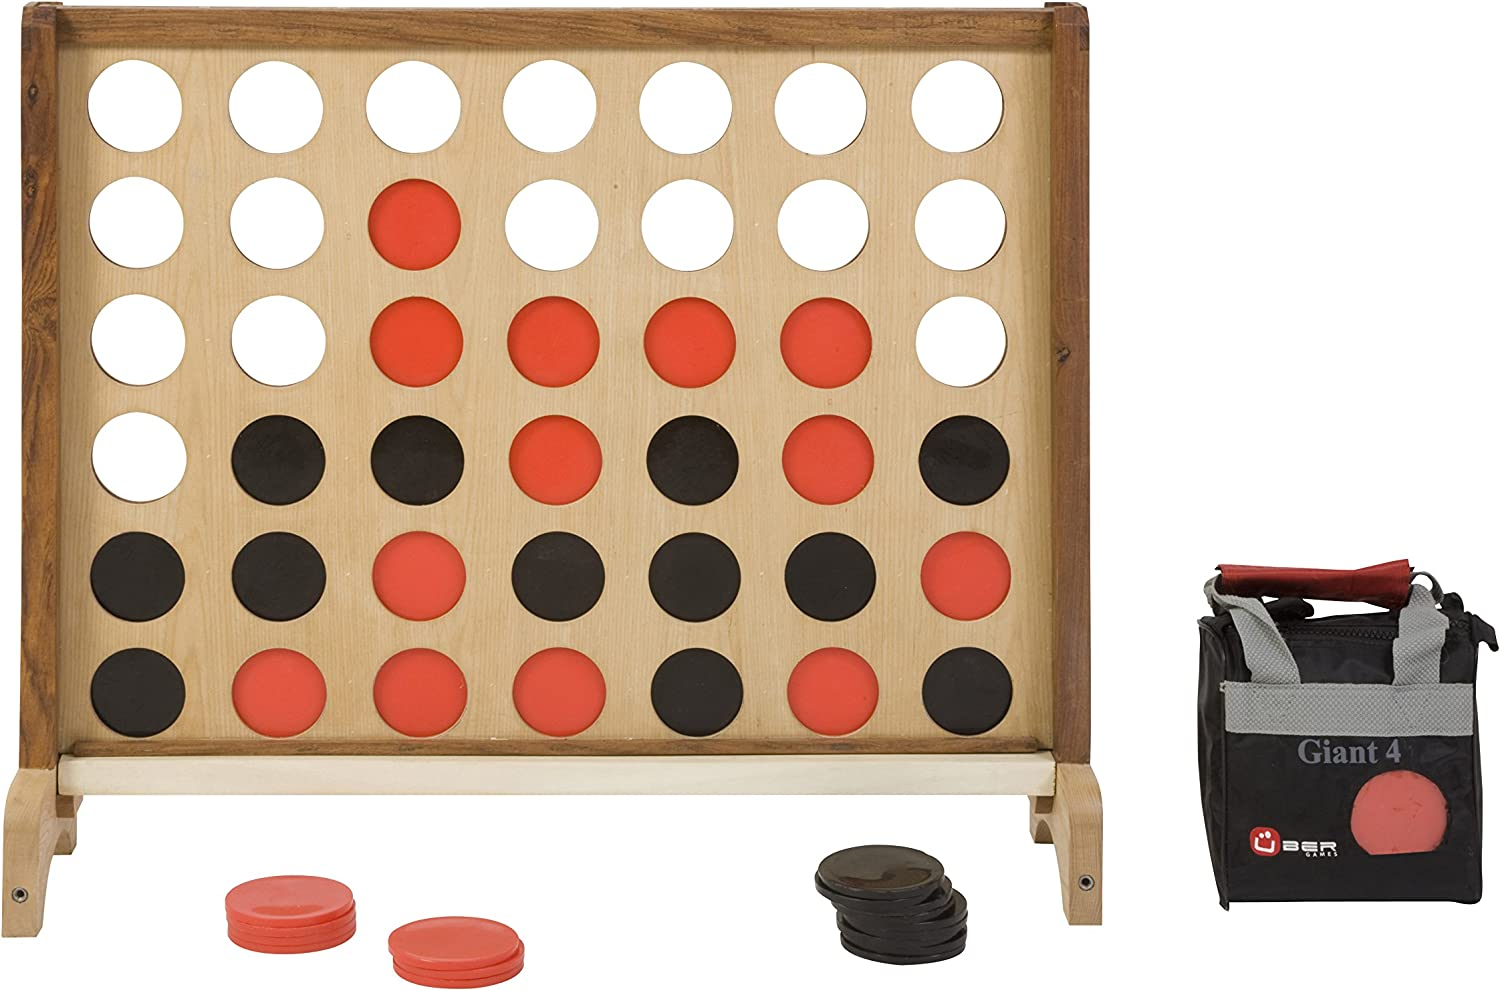 Uber Games Giant Al sold out. 4 in Our shop most popular a Row Wide 2.5 feet - 3 x Tall